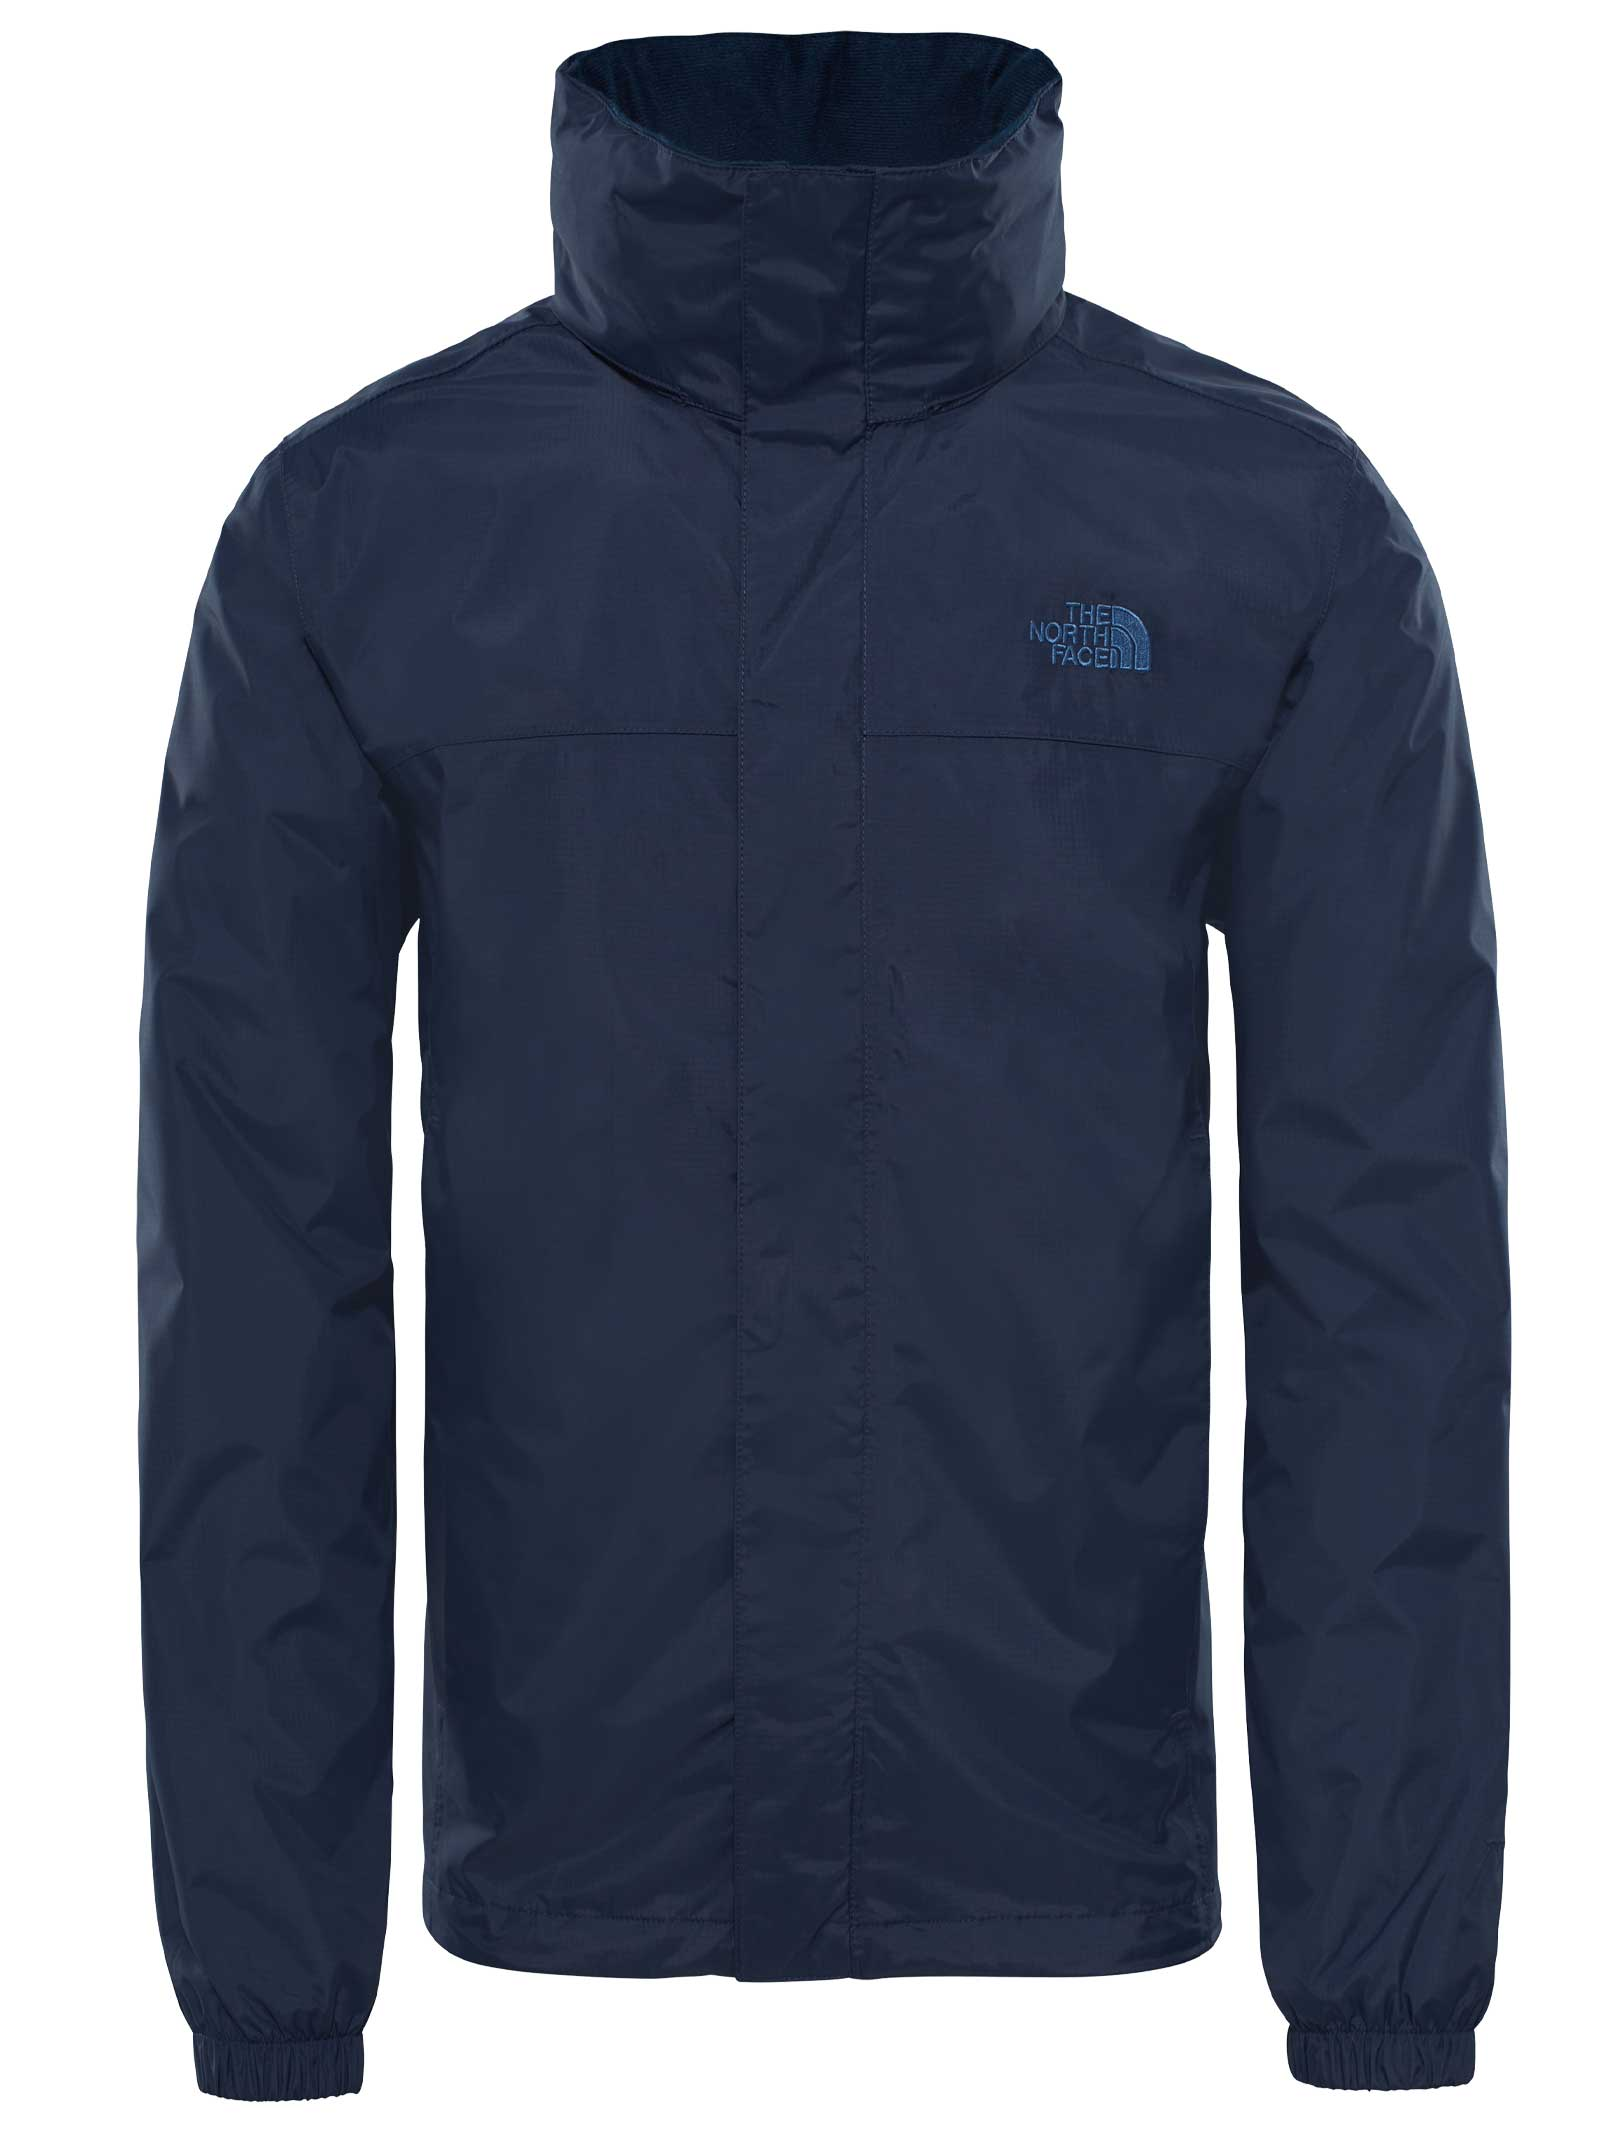 GIUBBOTTO  THE NORTH FACE THE NORTH FACE   Giubbotto   NF0A2VD5U6R1